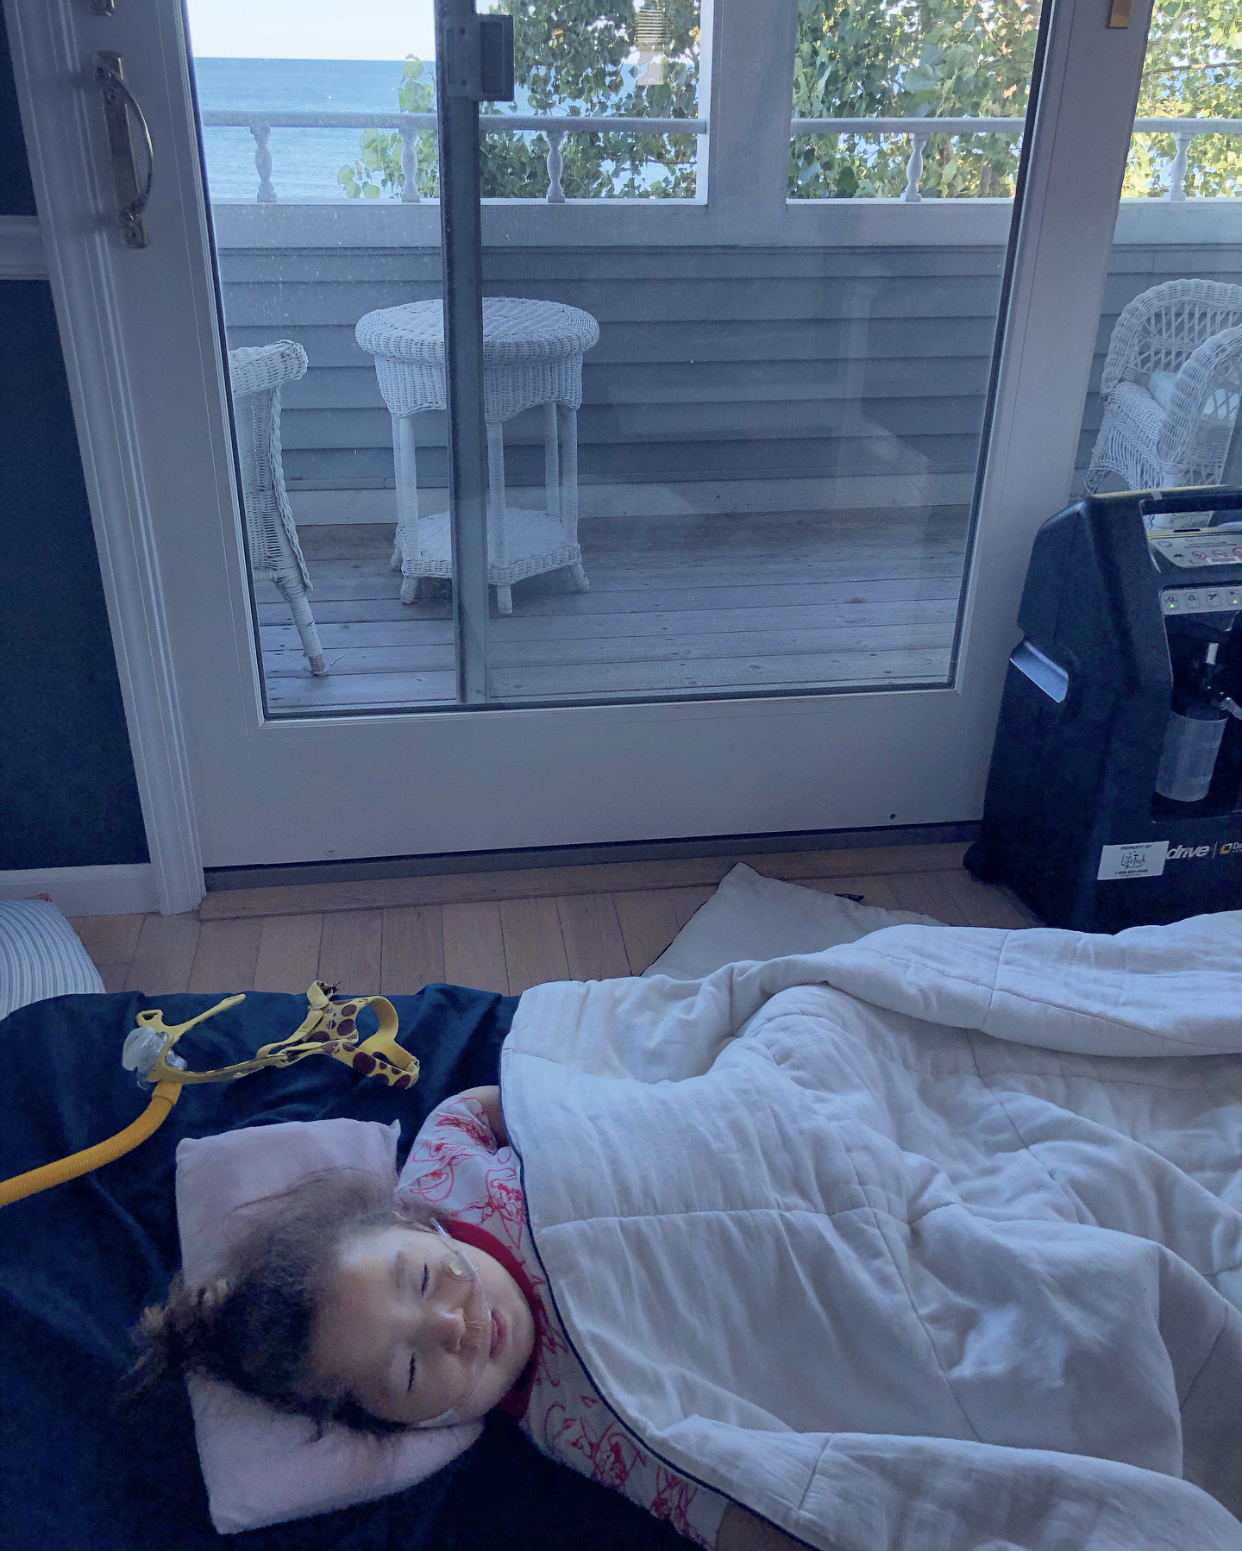 Sleeping Beauty and the Lake (bi-pap mask and oxygen concentrator also pictured), August 2019